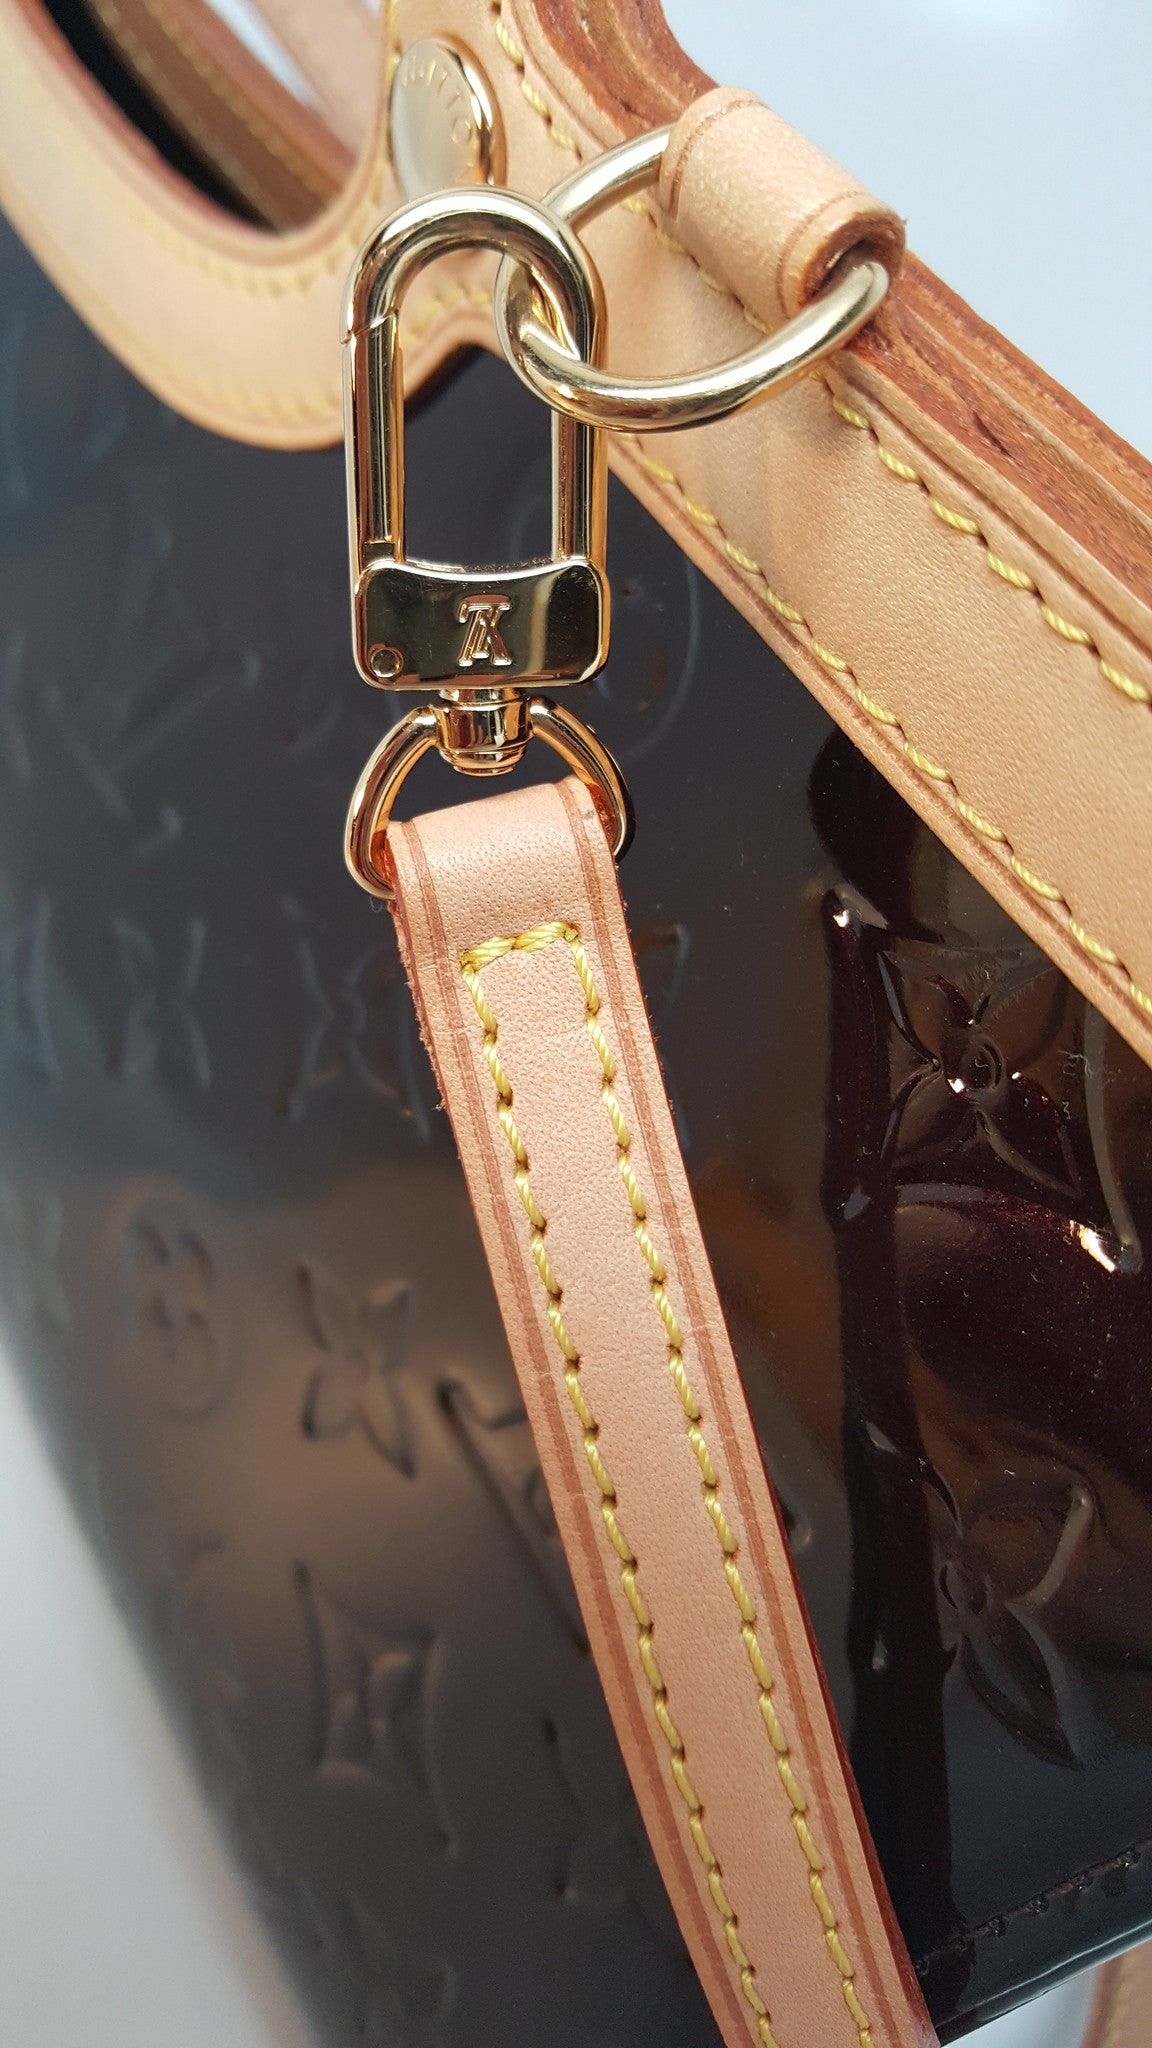 LOUIS VUITTON AMARANTE MONOGRAM VERNIS ROXBURY DRIVE BAG